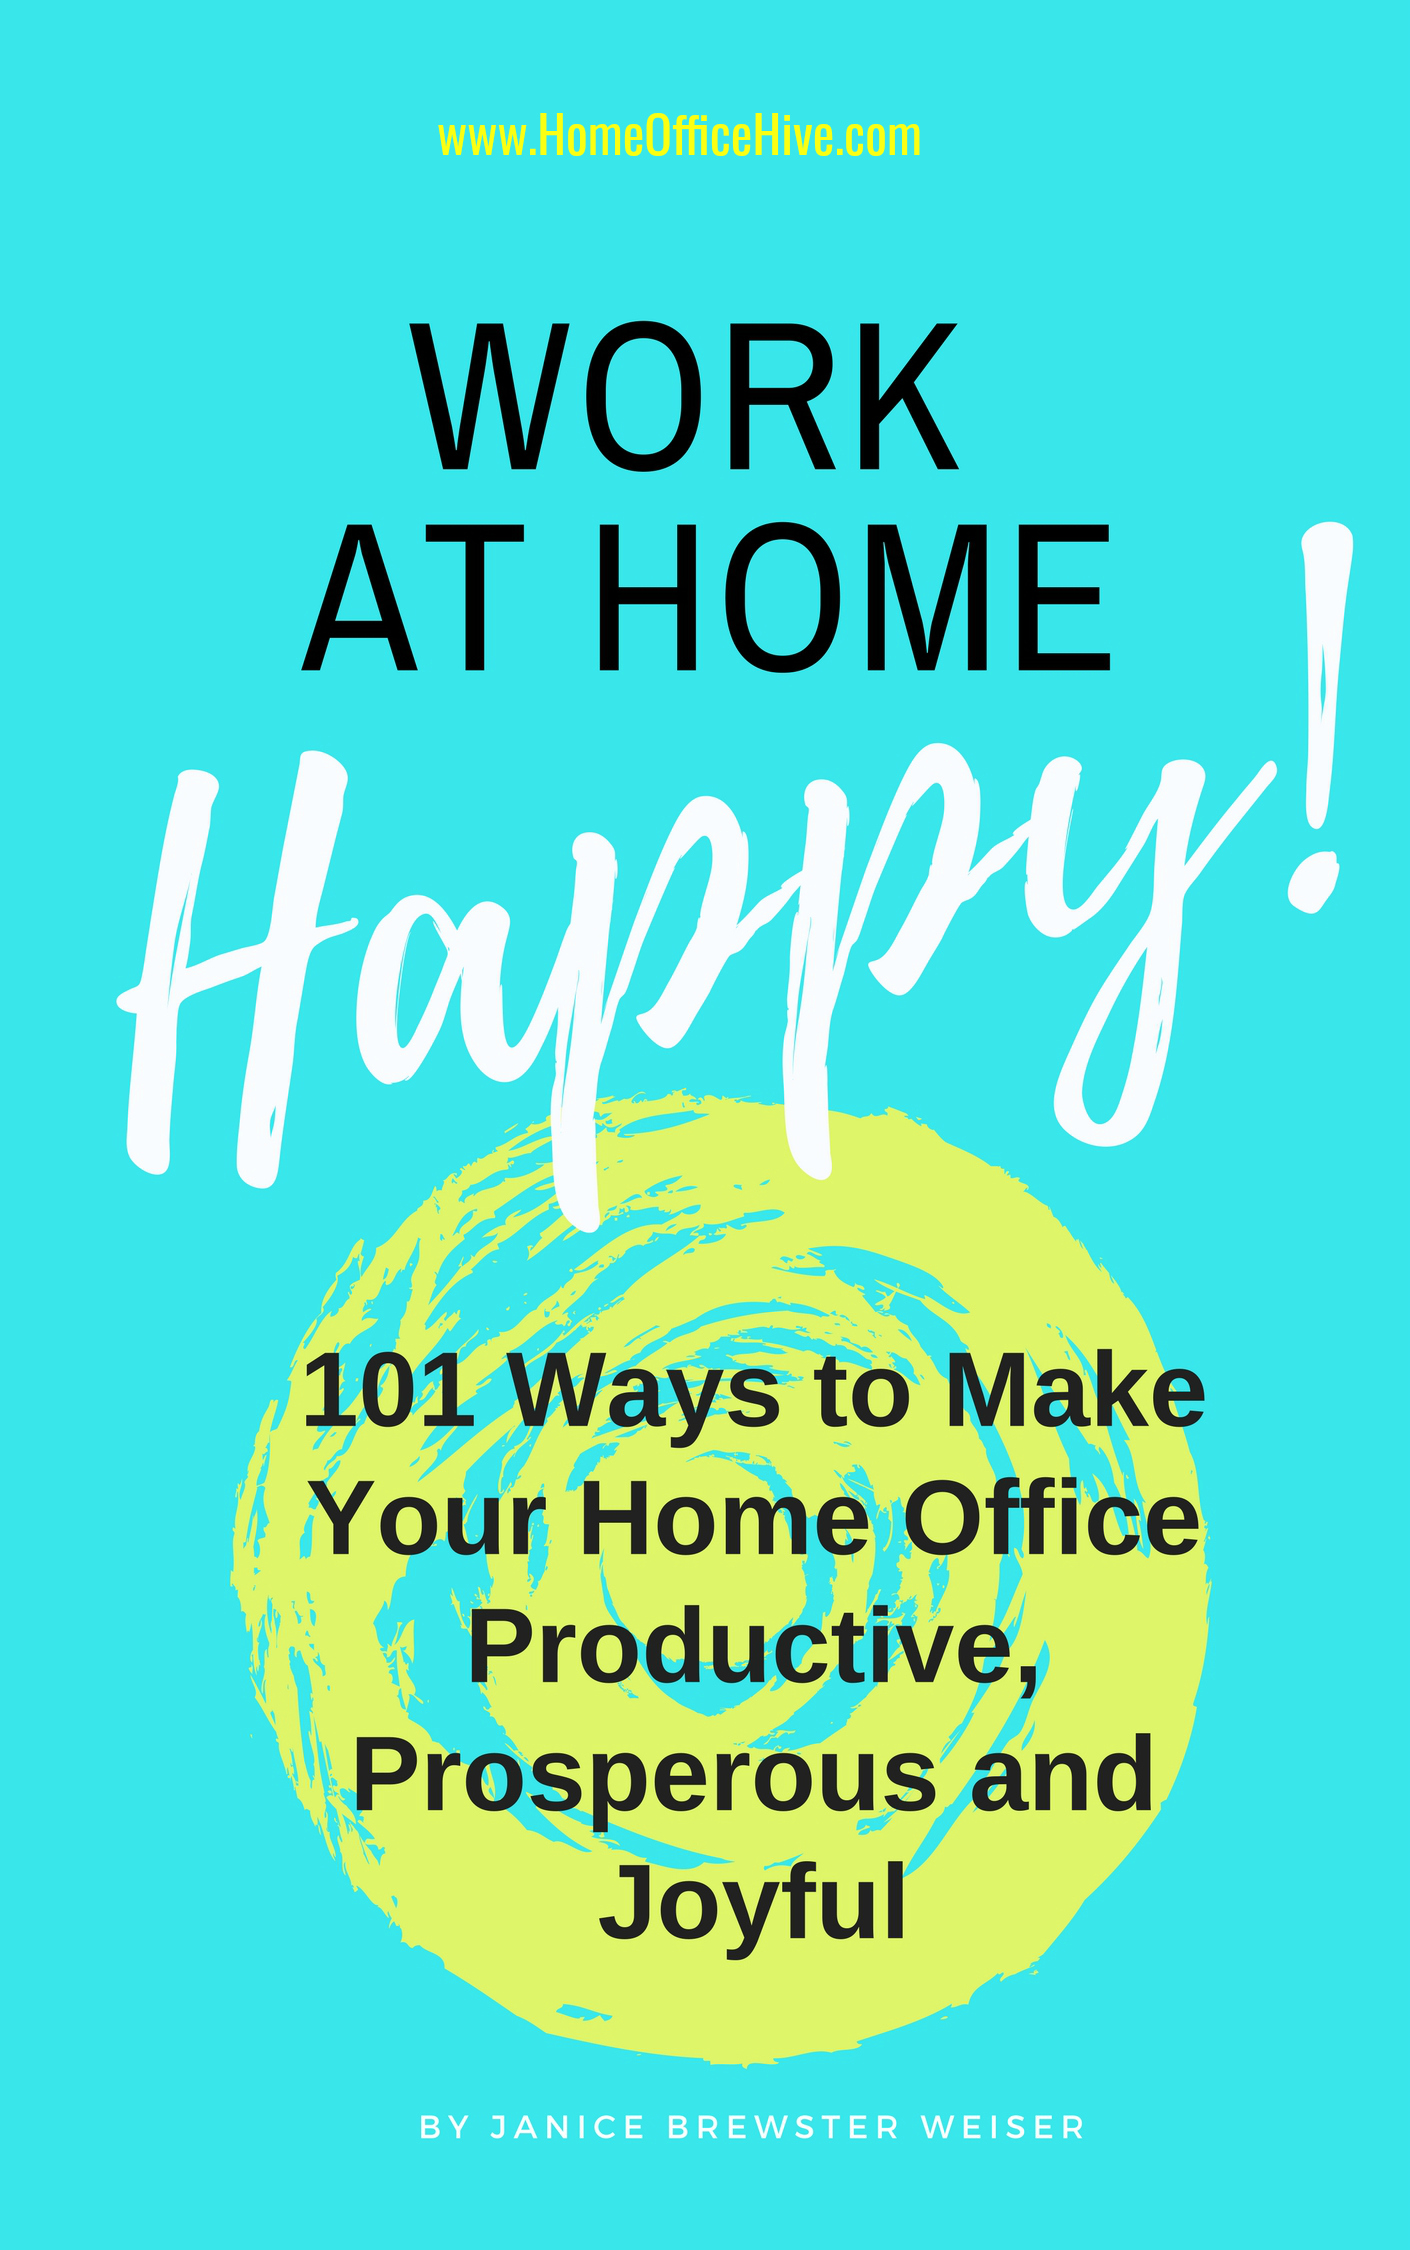 Work at Home Happy: 101 ways to make your home office productive, prosperous and joyful